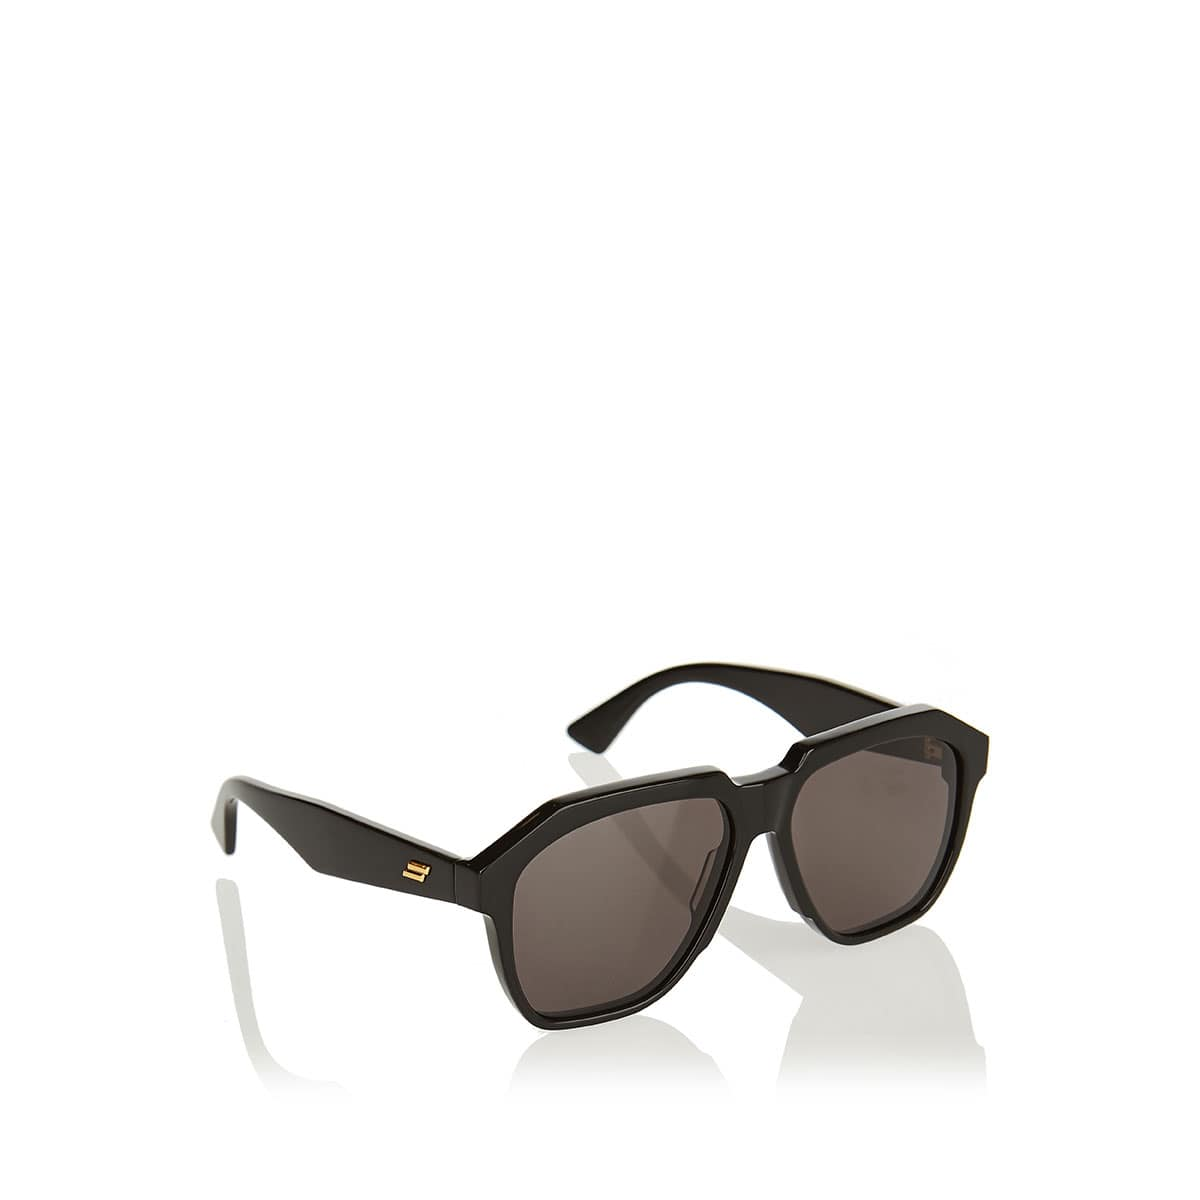 Oversized acetate sunglasses